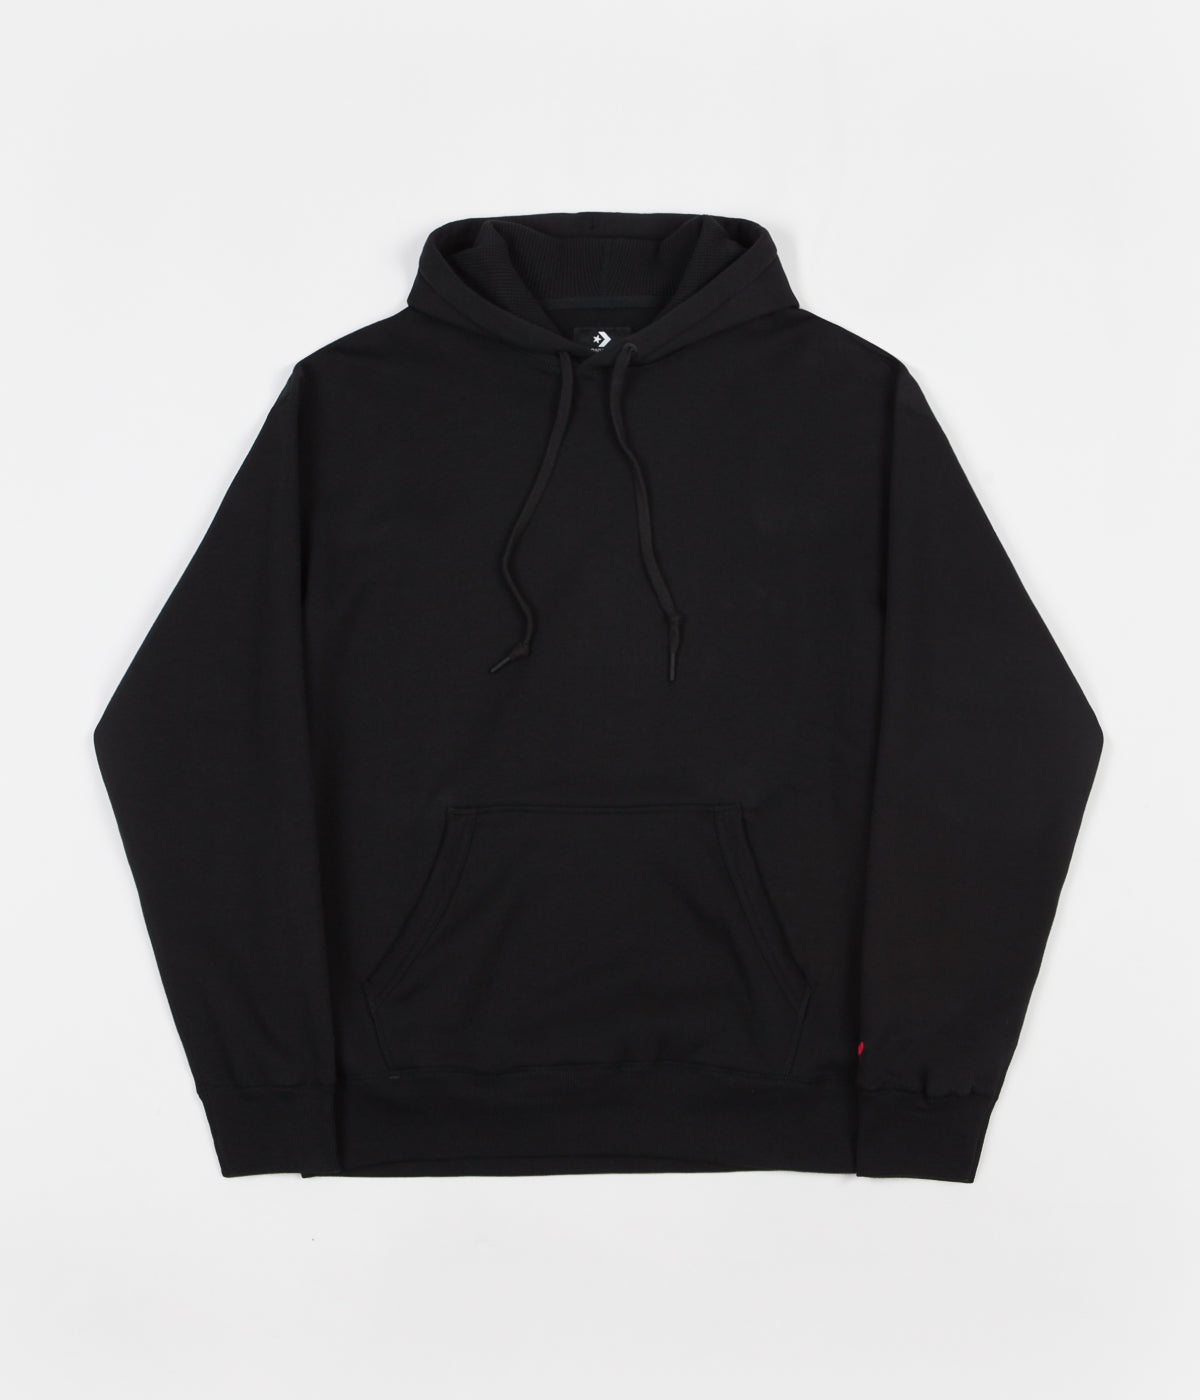 Converse x Hopps Thermal Lined Hoodie - Black